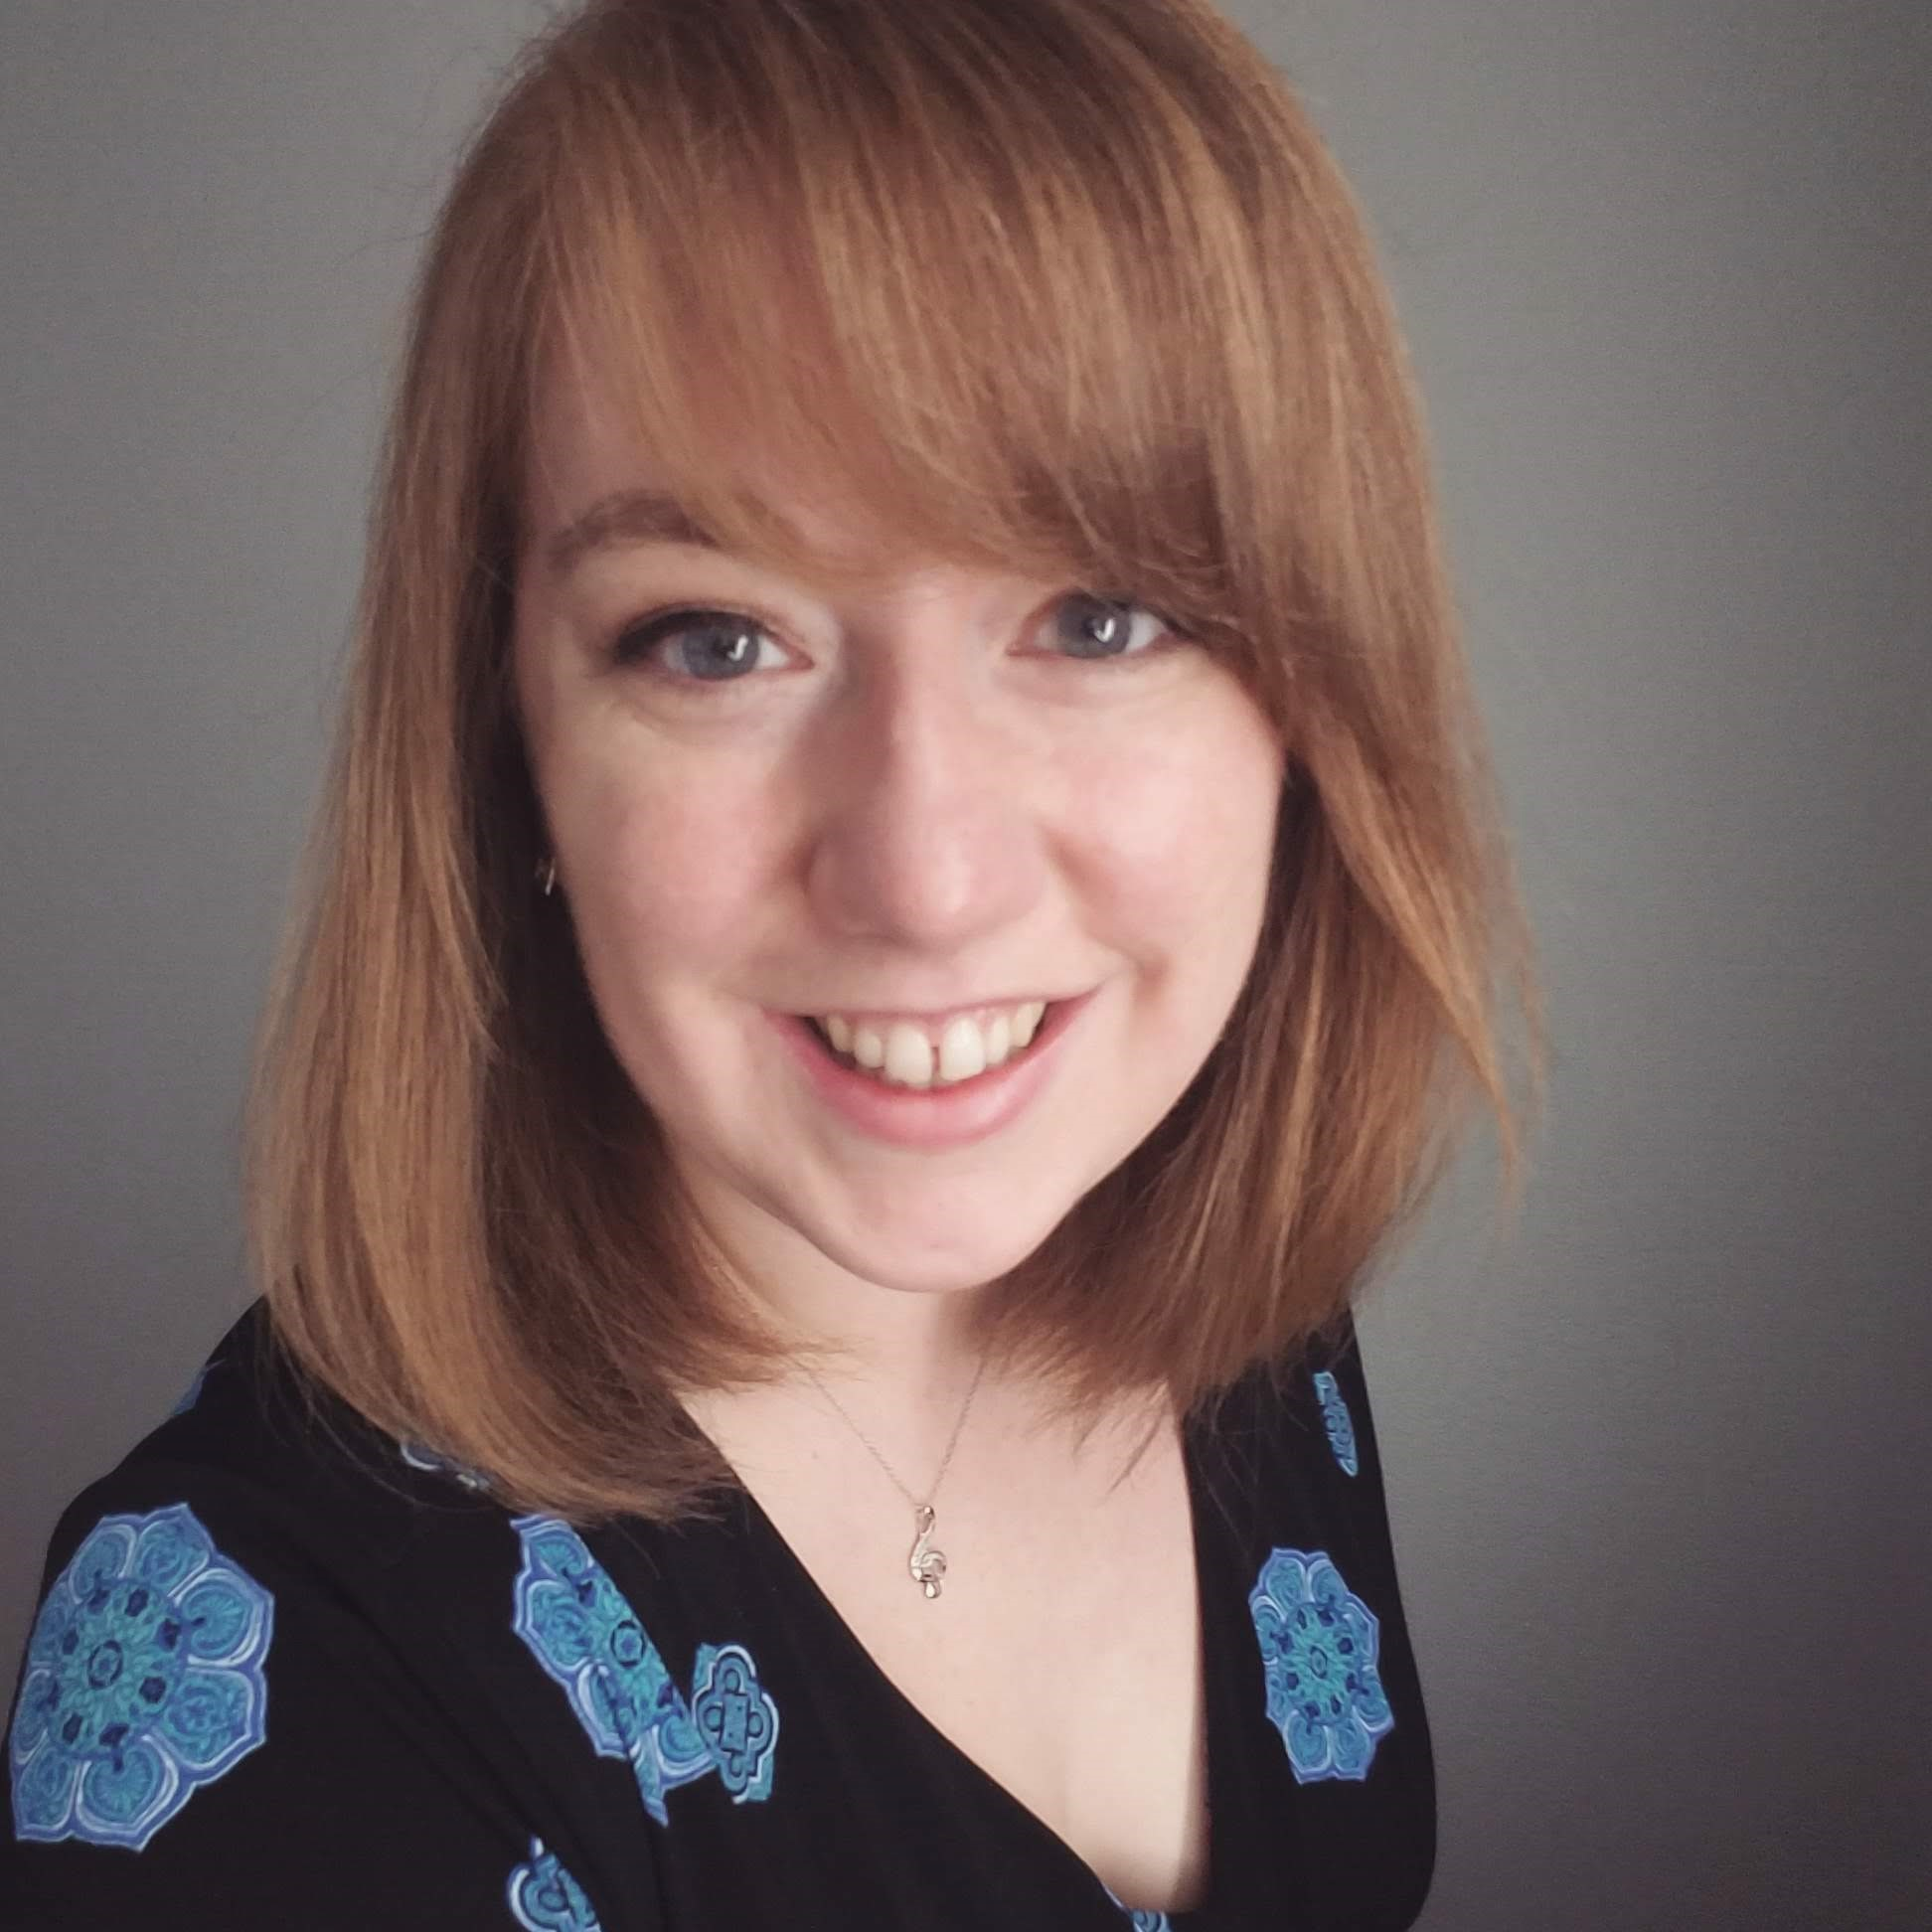 Rachel Starks (Research Assistant, Phase III)